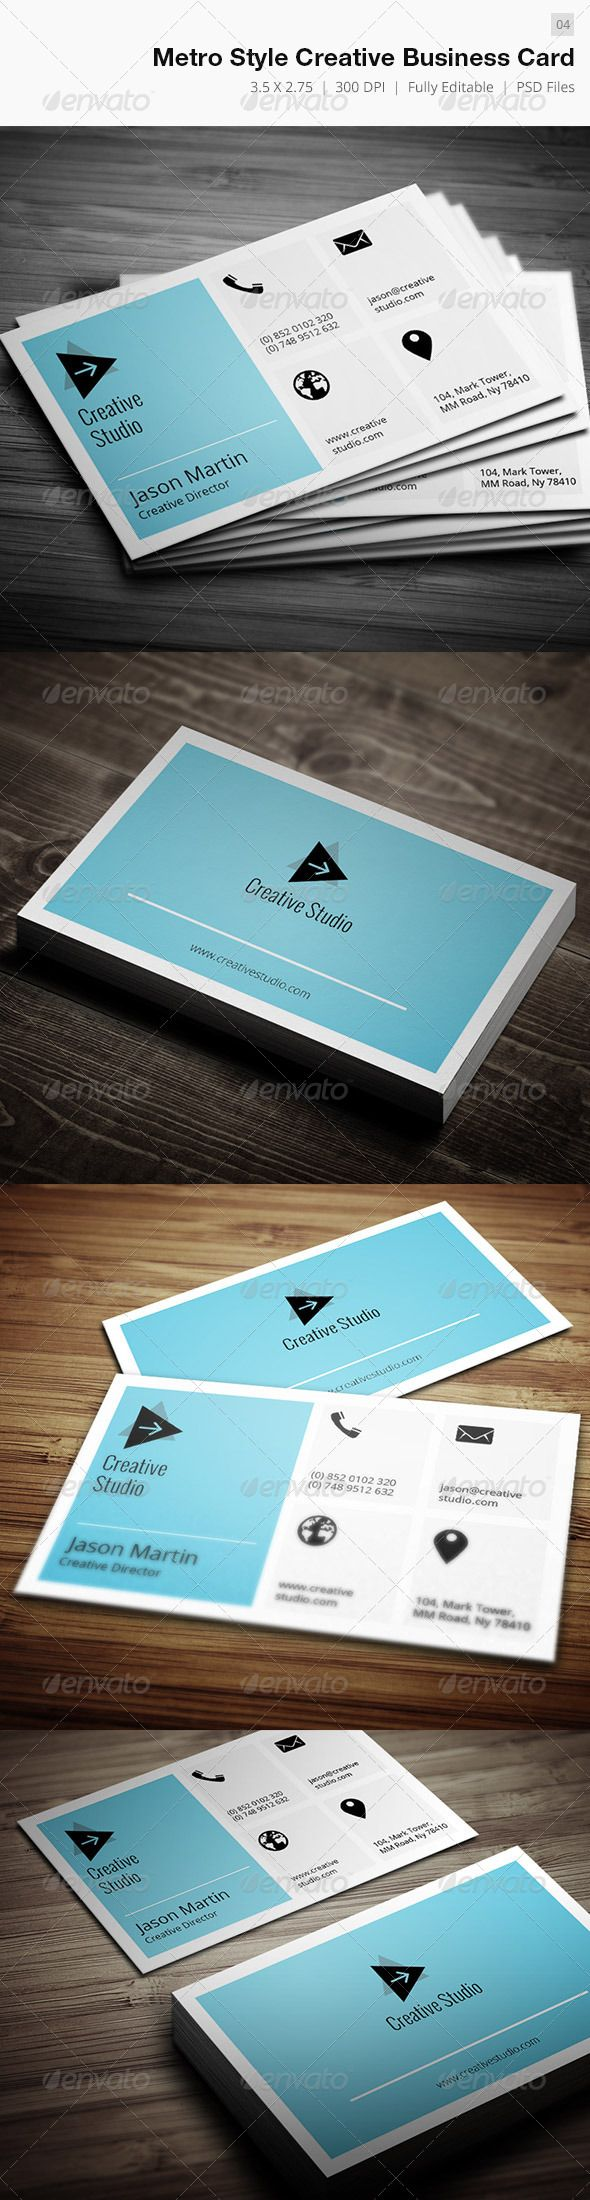 Metro Style Creative Business Card  04 — Photoshop PSD #executive #creative • Available here → https://graphicriver.net/item/metro-style-creative-business-card-04/4921257?ref=pxcr